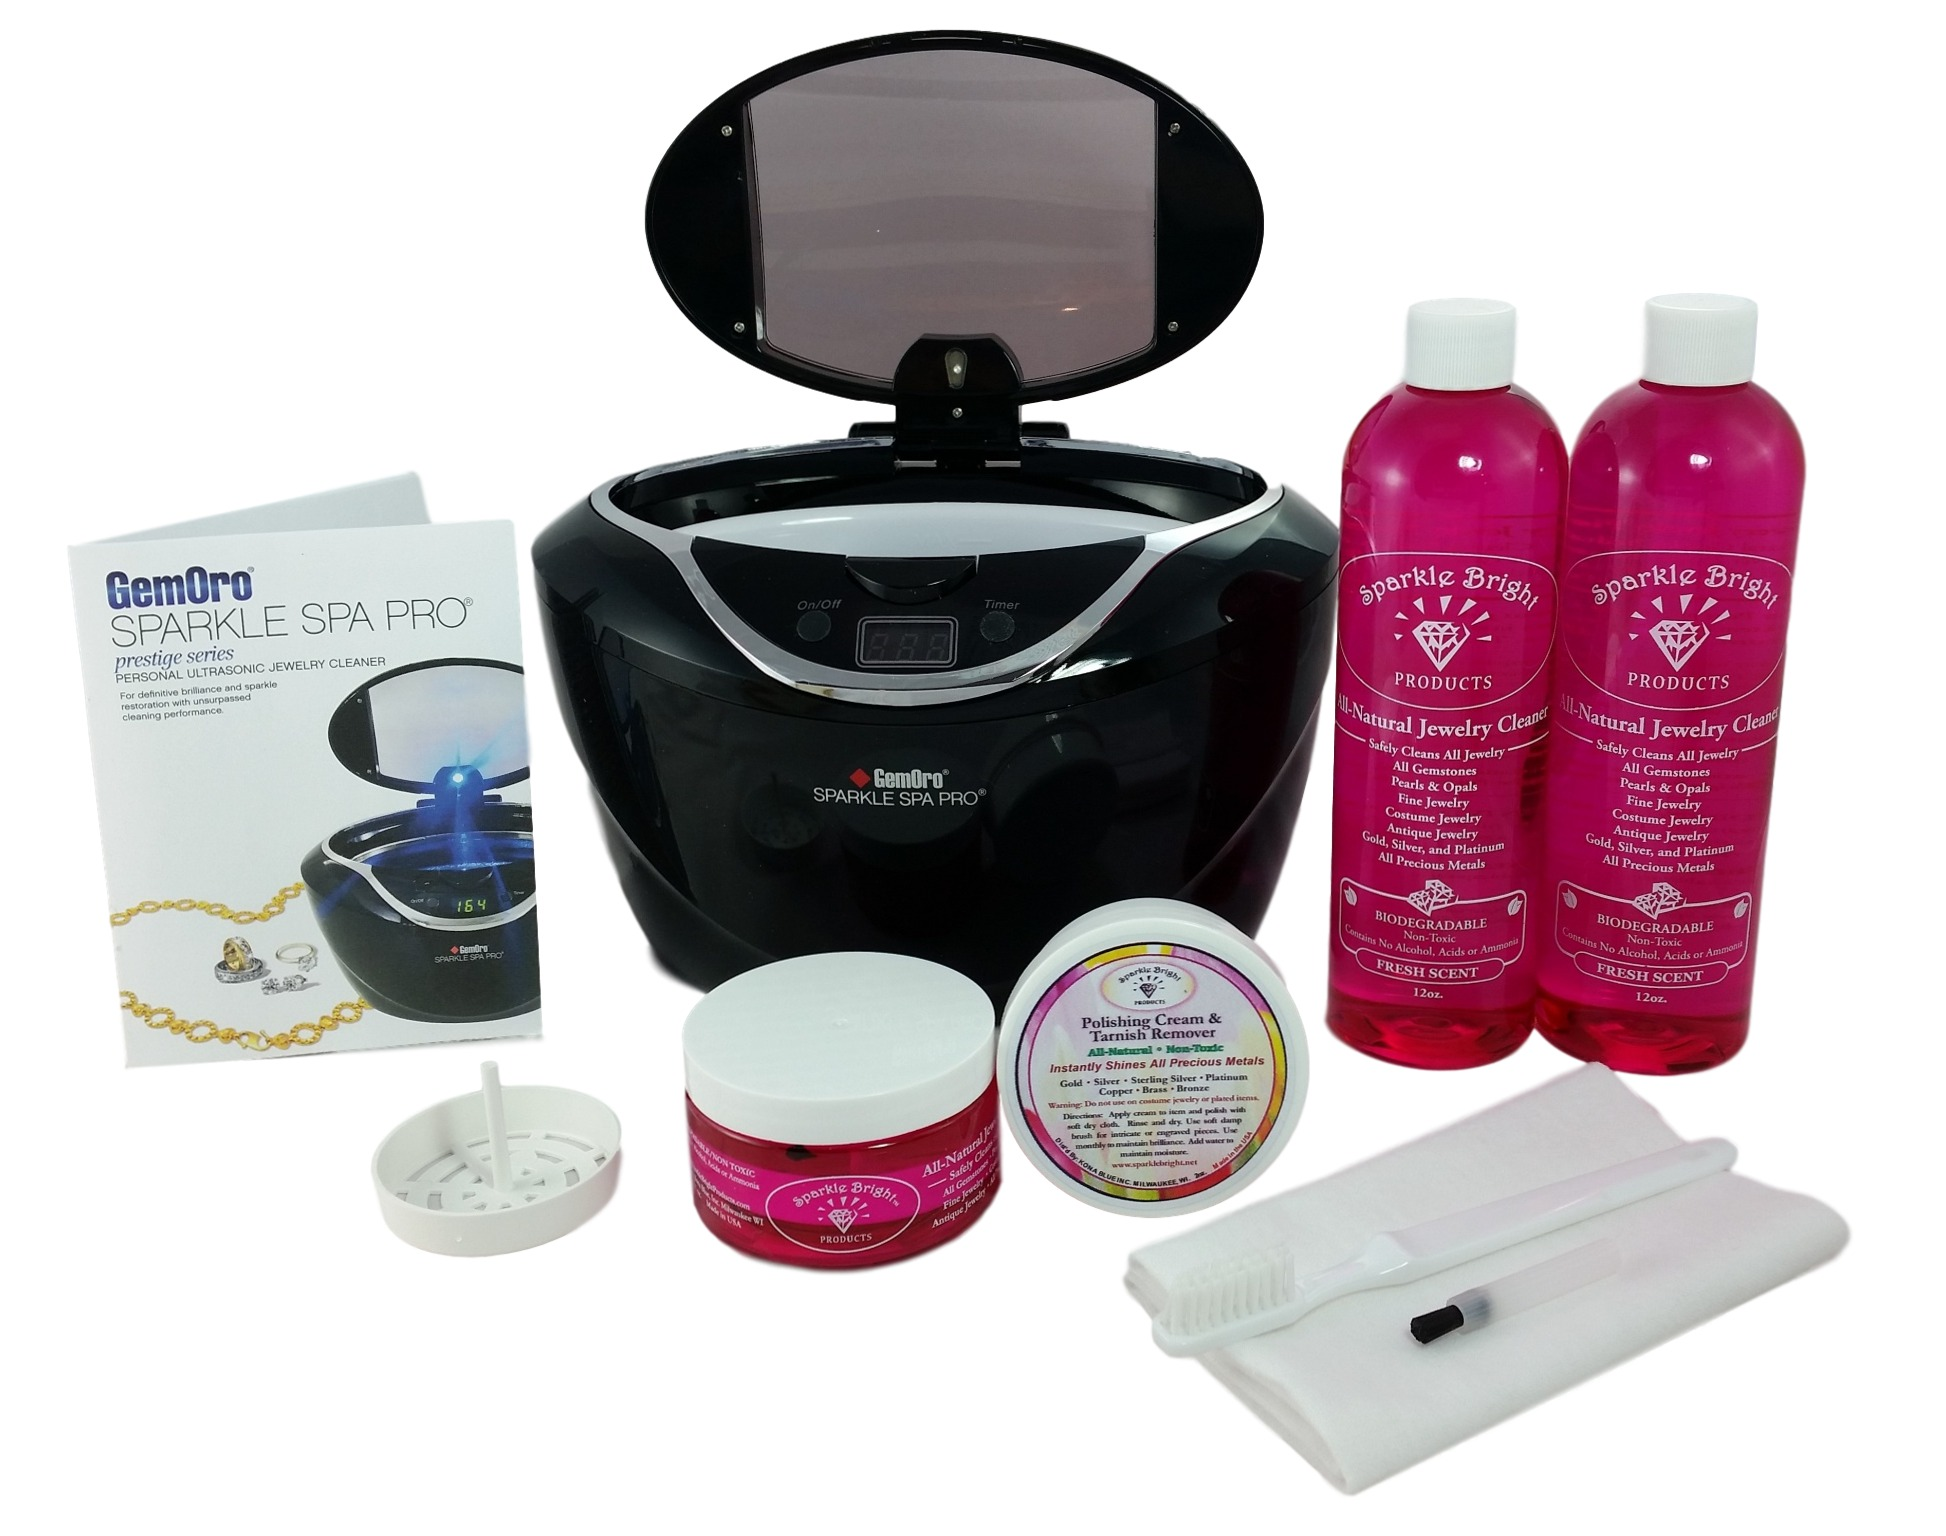 GEMORO 1790 SPARKLE SPA PRO BLACK ULTRASONIC CHOICE JEWELRY CLEANING KIT Includes Sparkle Bright All-Natural Jewelry... by GemOro